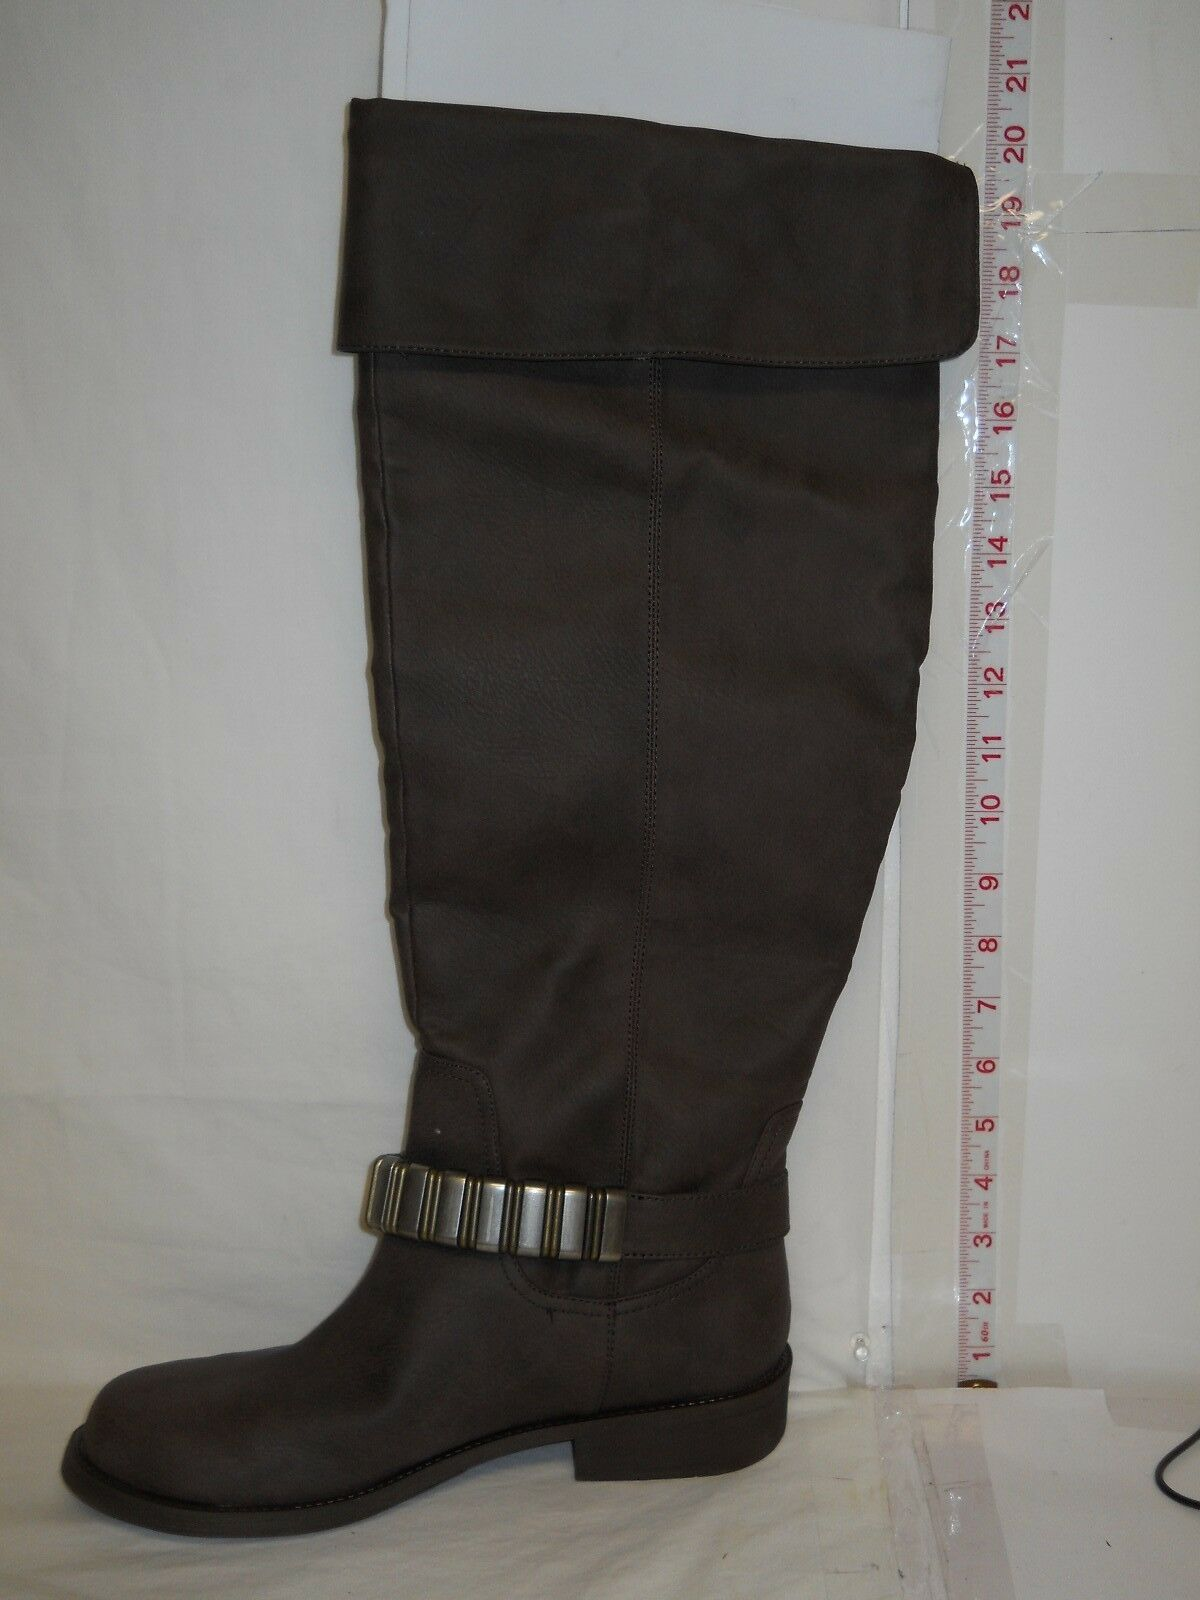 Kenneth Cole Racing Reaction New Donna Moto Racing Cole Bark Brown Stivali 6 M Shoes NWB d6210a